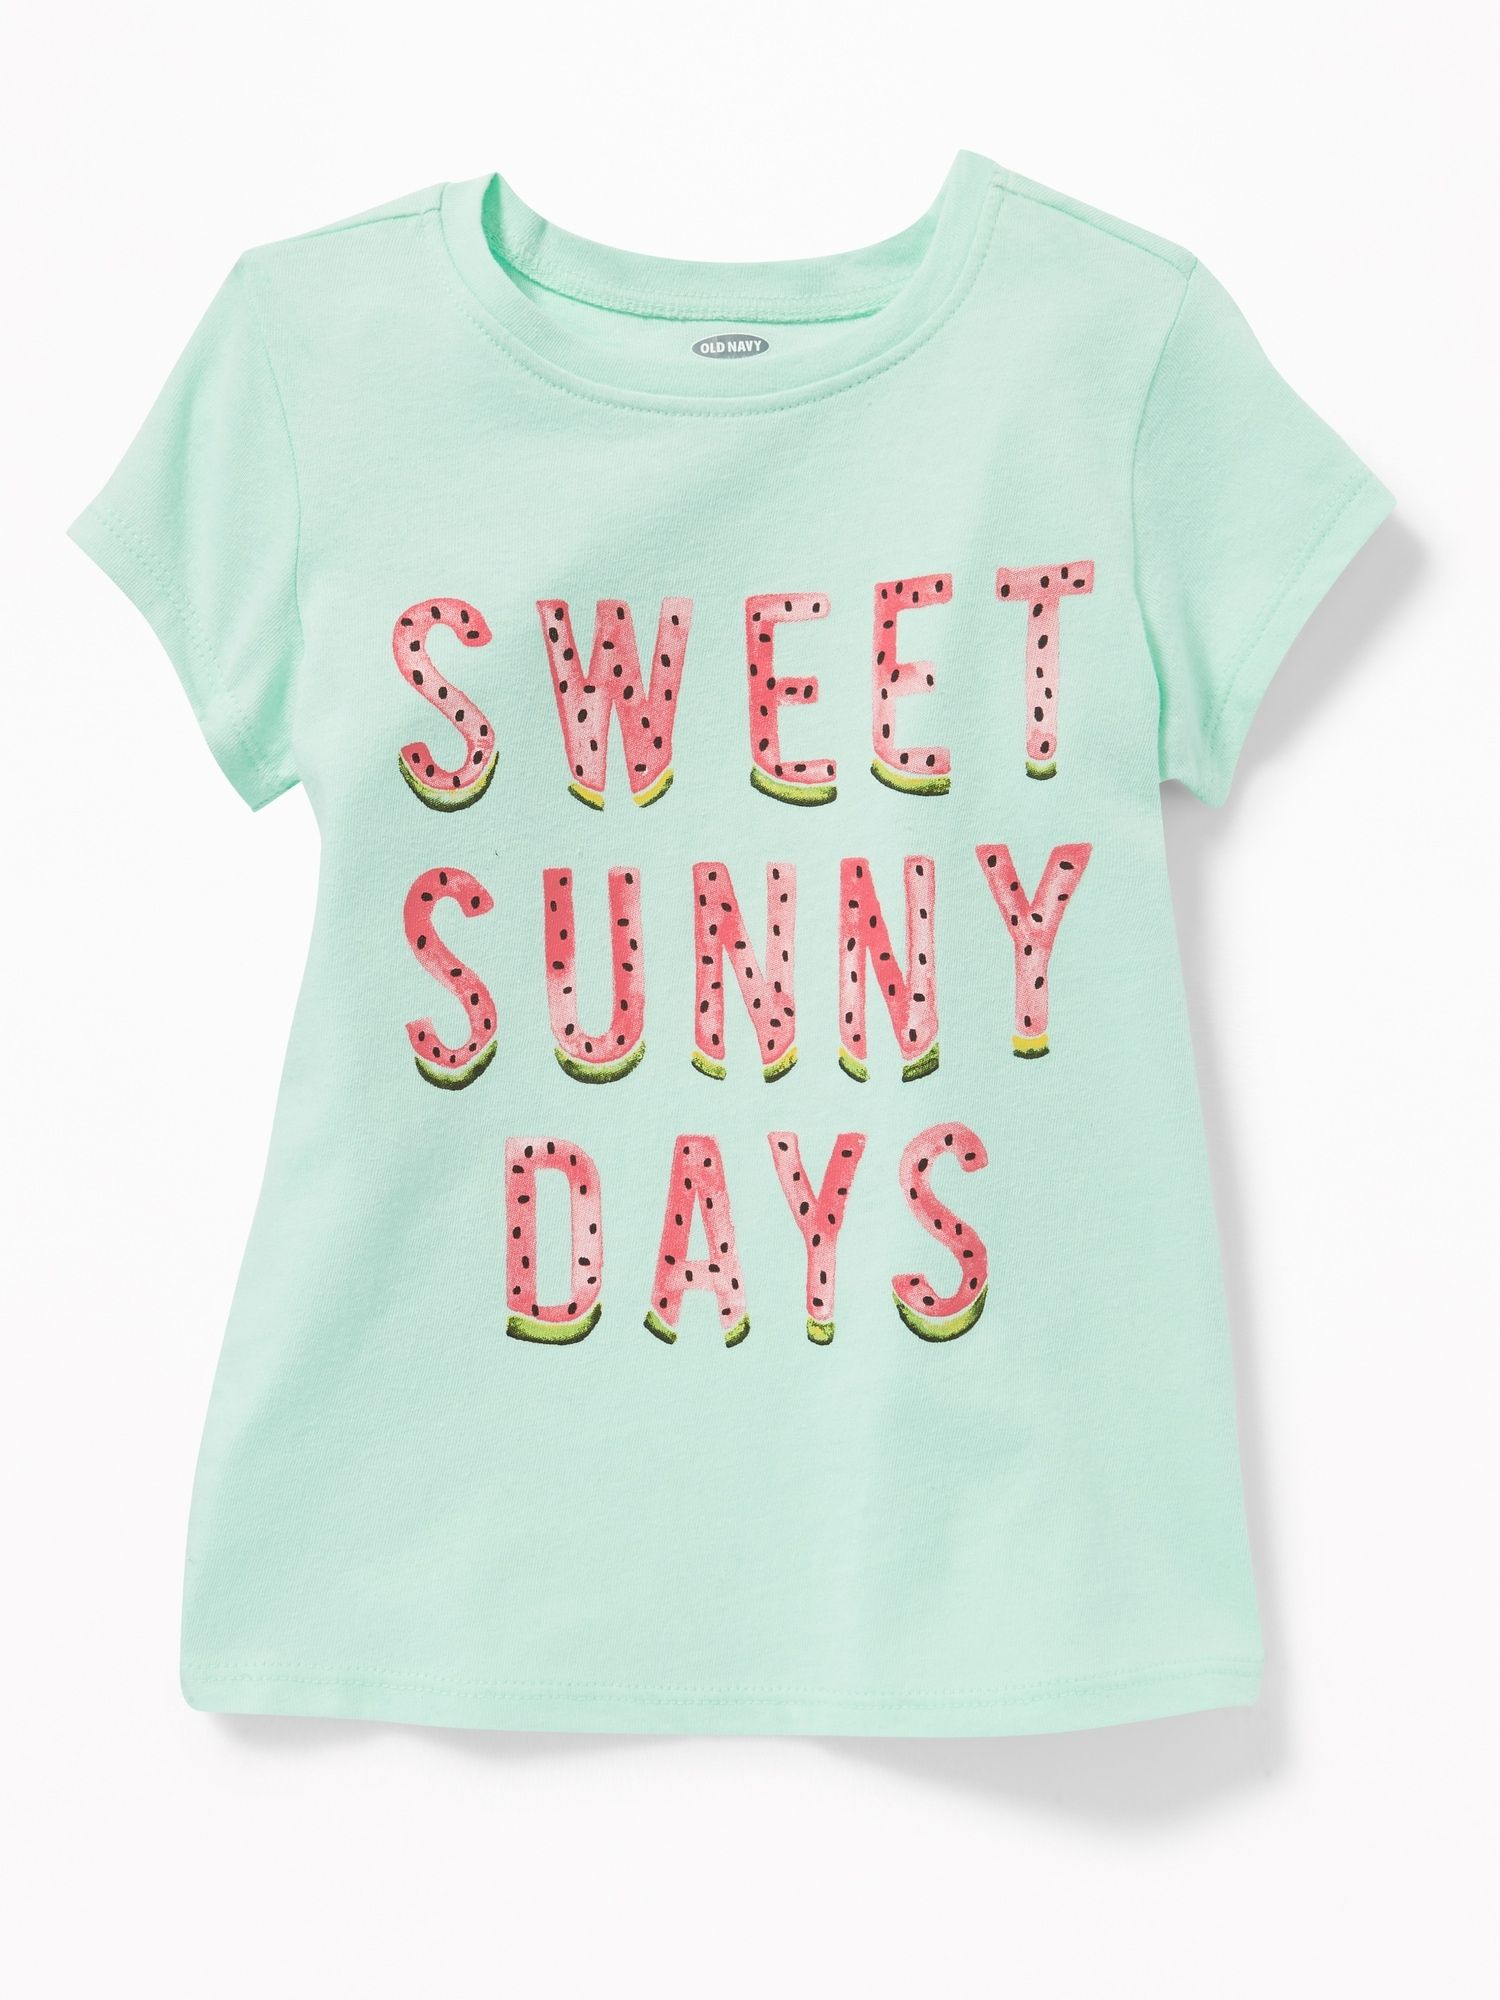 ad9c2551f Graphic Crew-Neck Tee for Toddler Girls | Little Girl Clothes ...